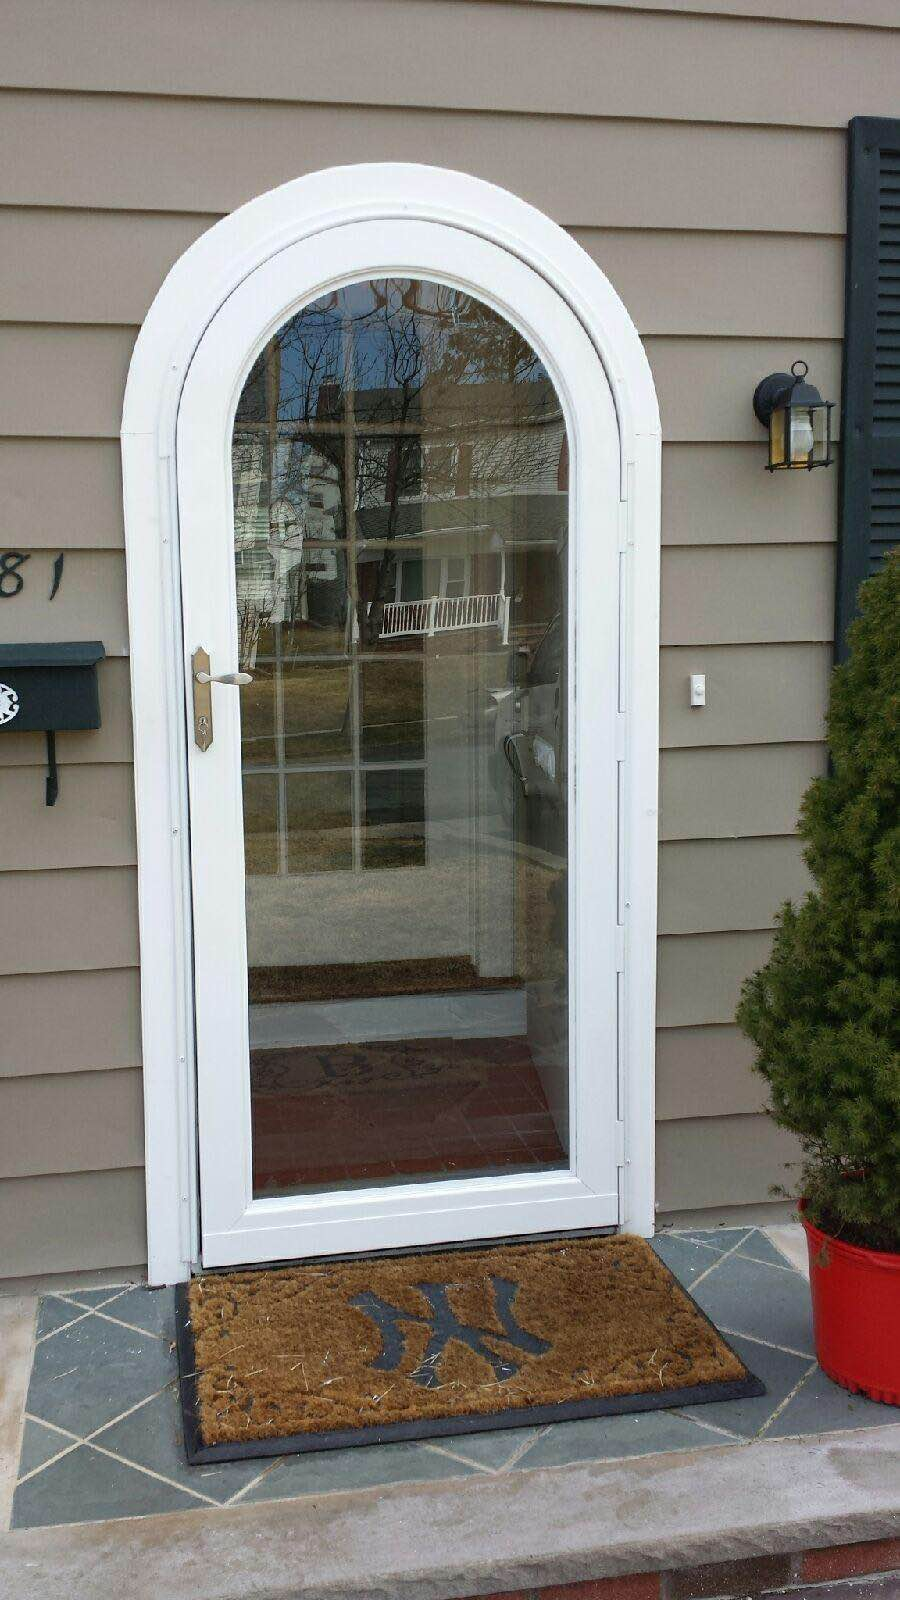 & Everything You Need to Know About Arch Top Storm Doors